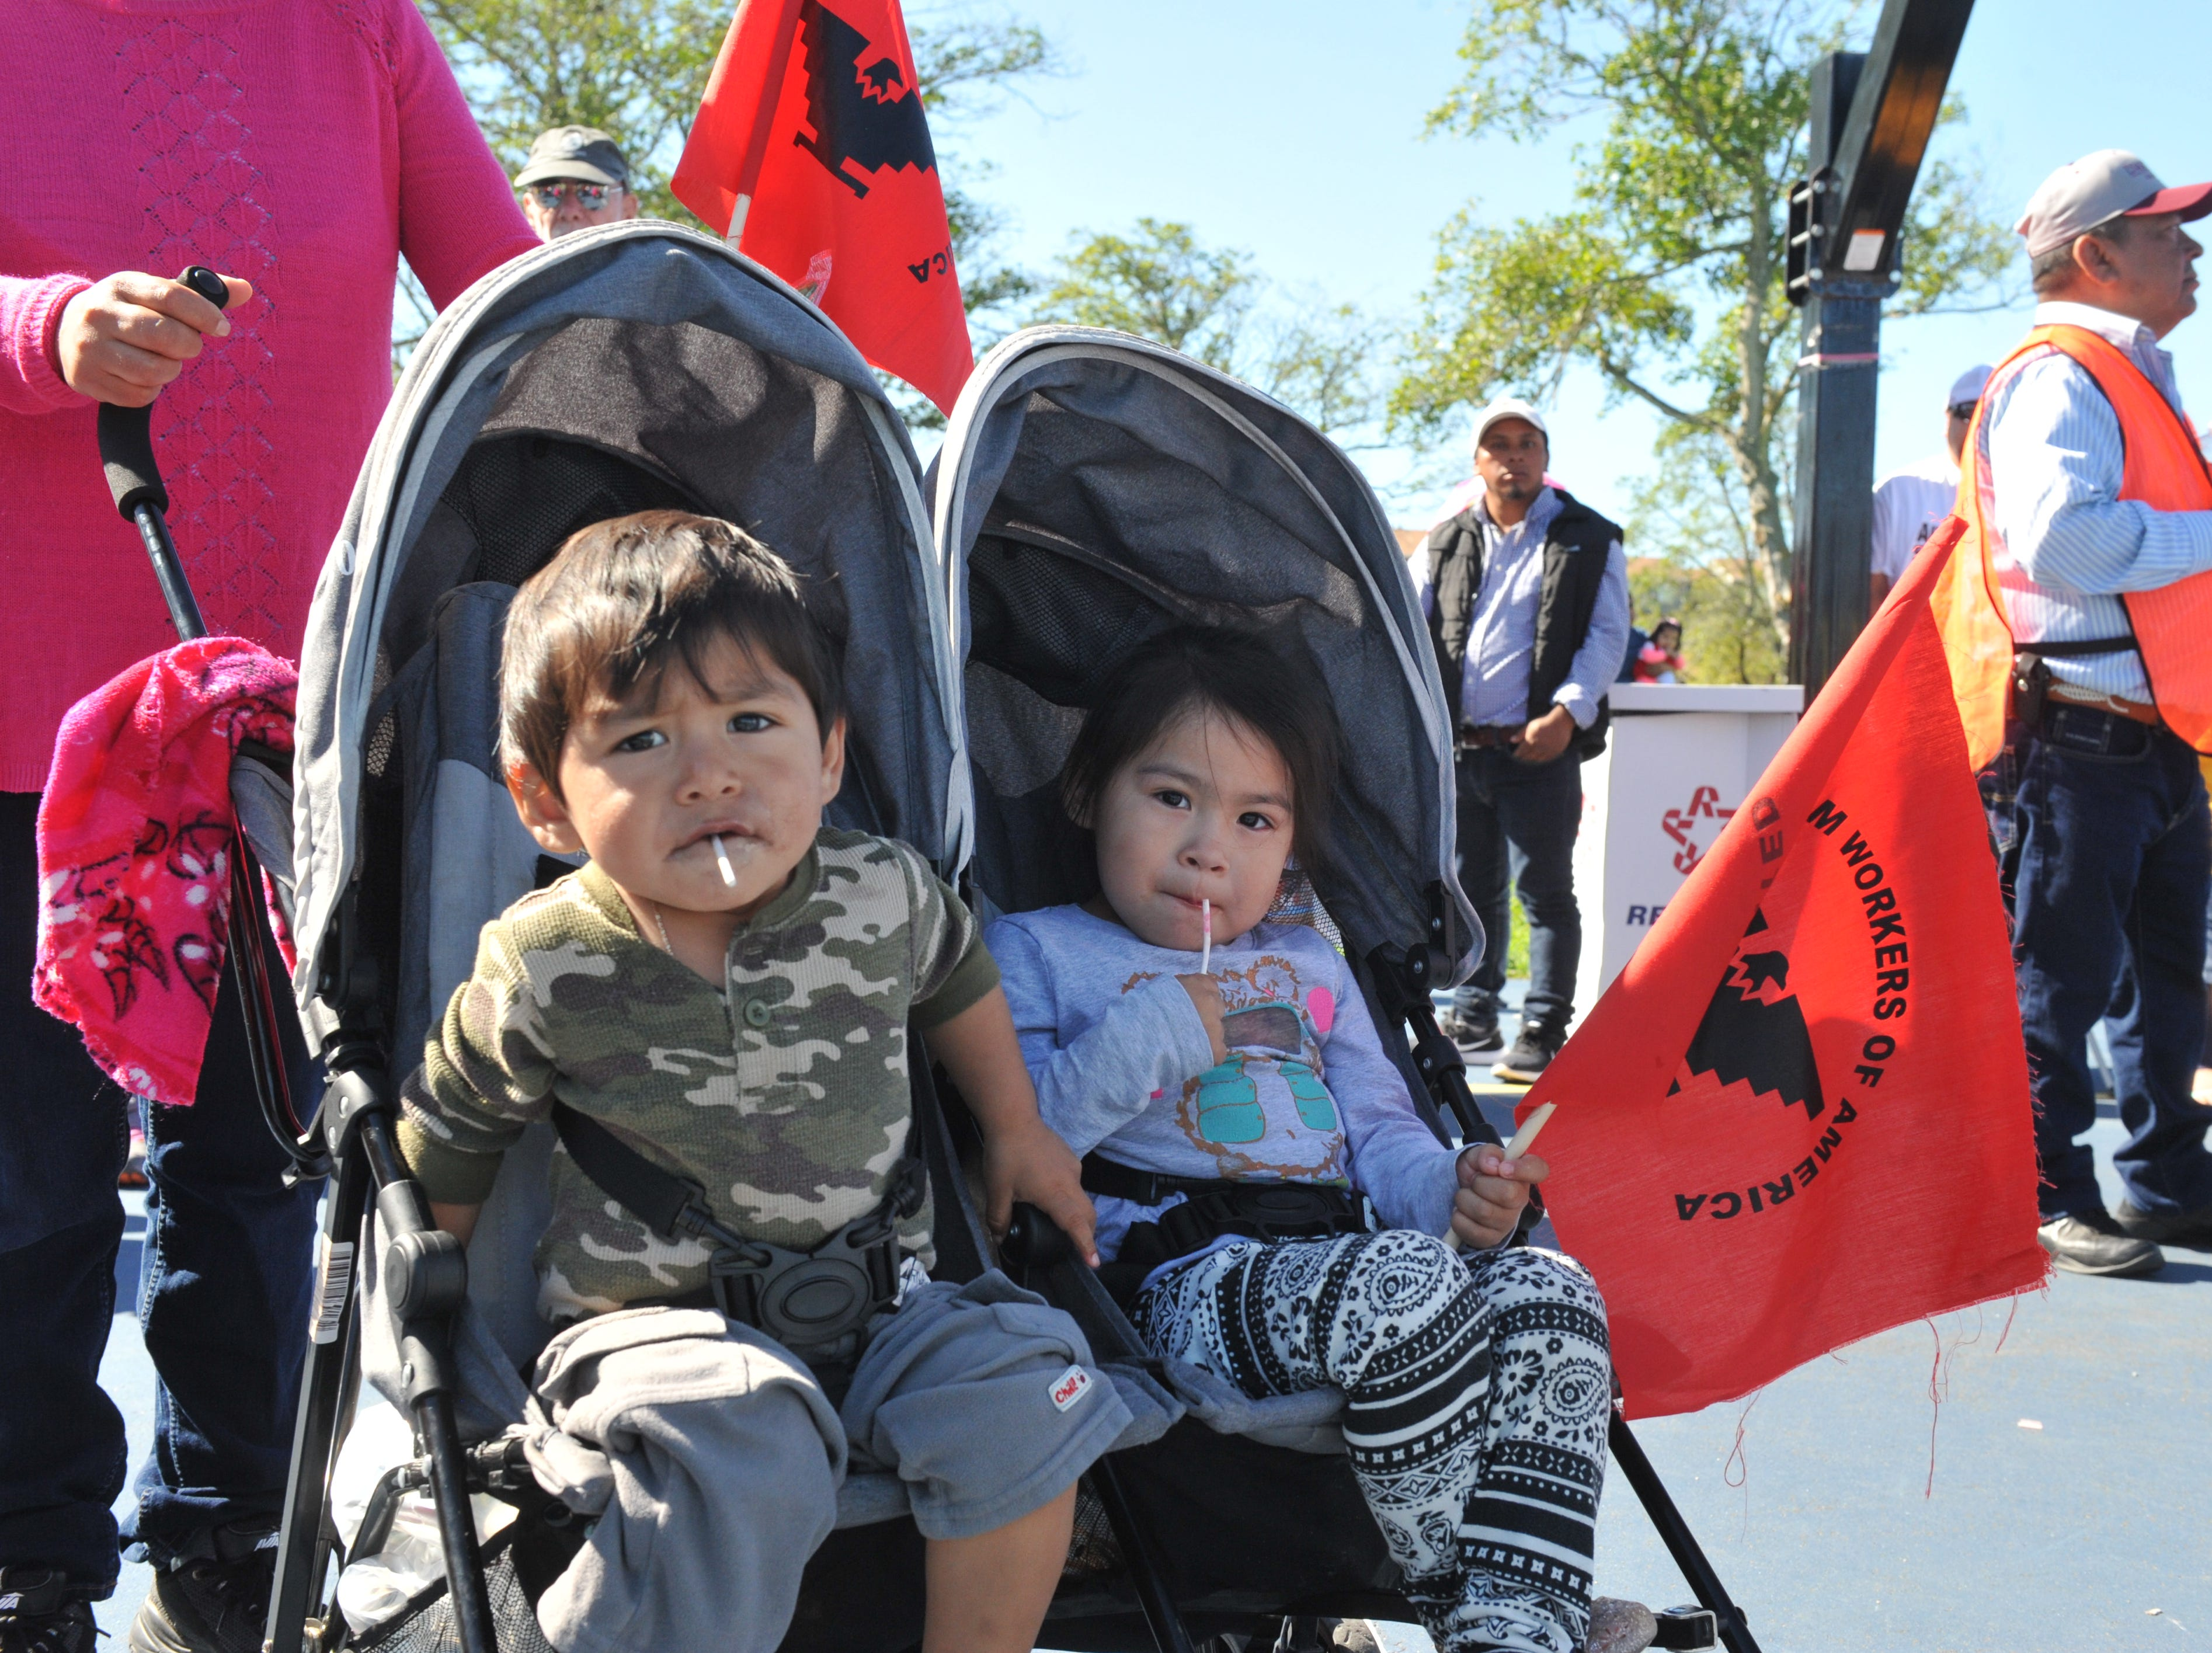 """Marchers organized by the United Farm Workers went through East Salinas on March 31, 2019, Cesar Chavez's 92nd birthday, to support the """"Blue Card"""" bill that would provide a pathway to citizenship for farmworkers in the U.S."""